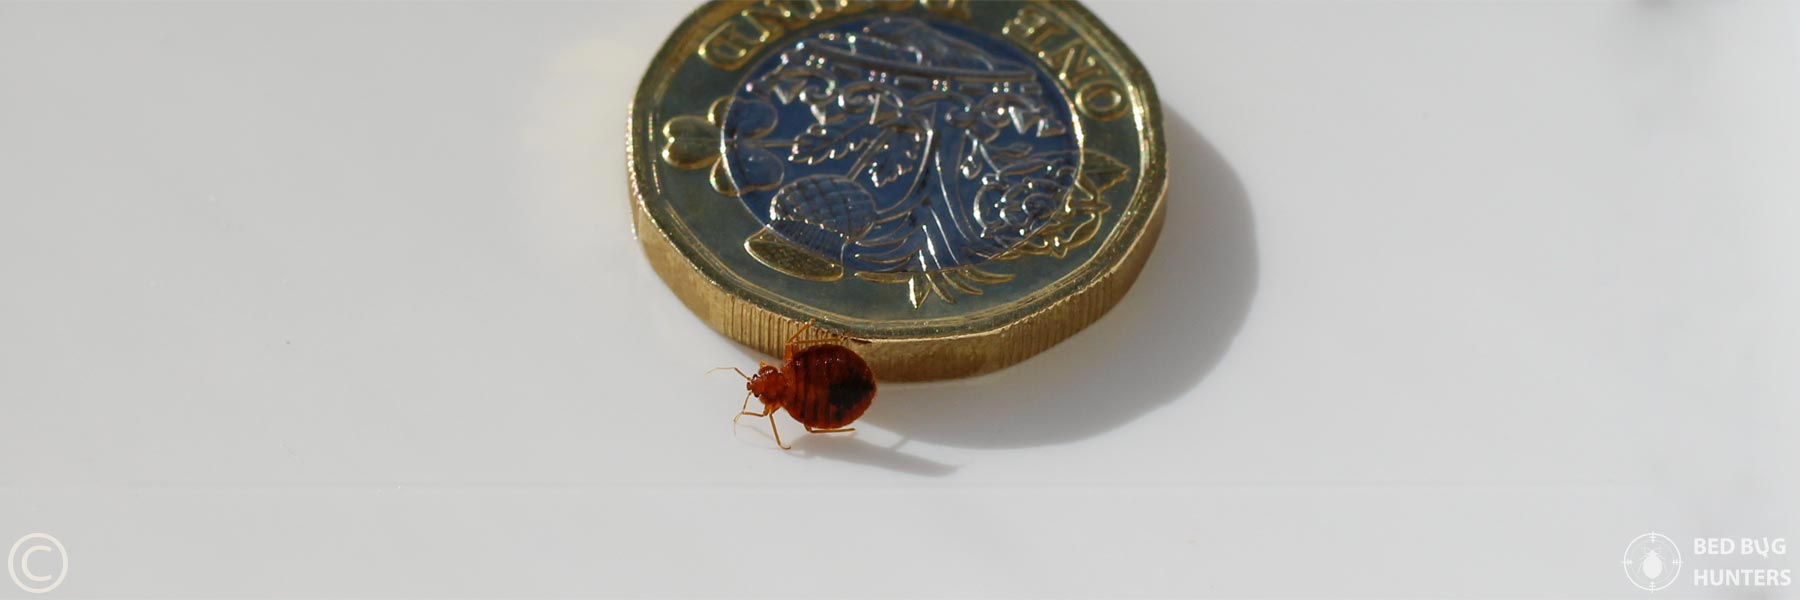 bed-bug-hunters-london-macro-pound